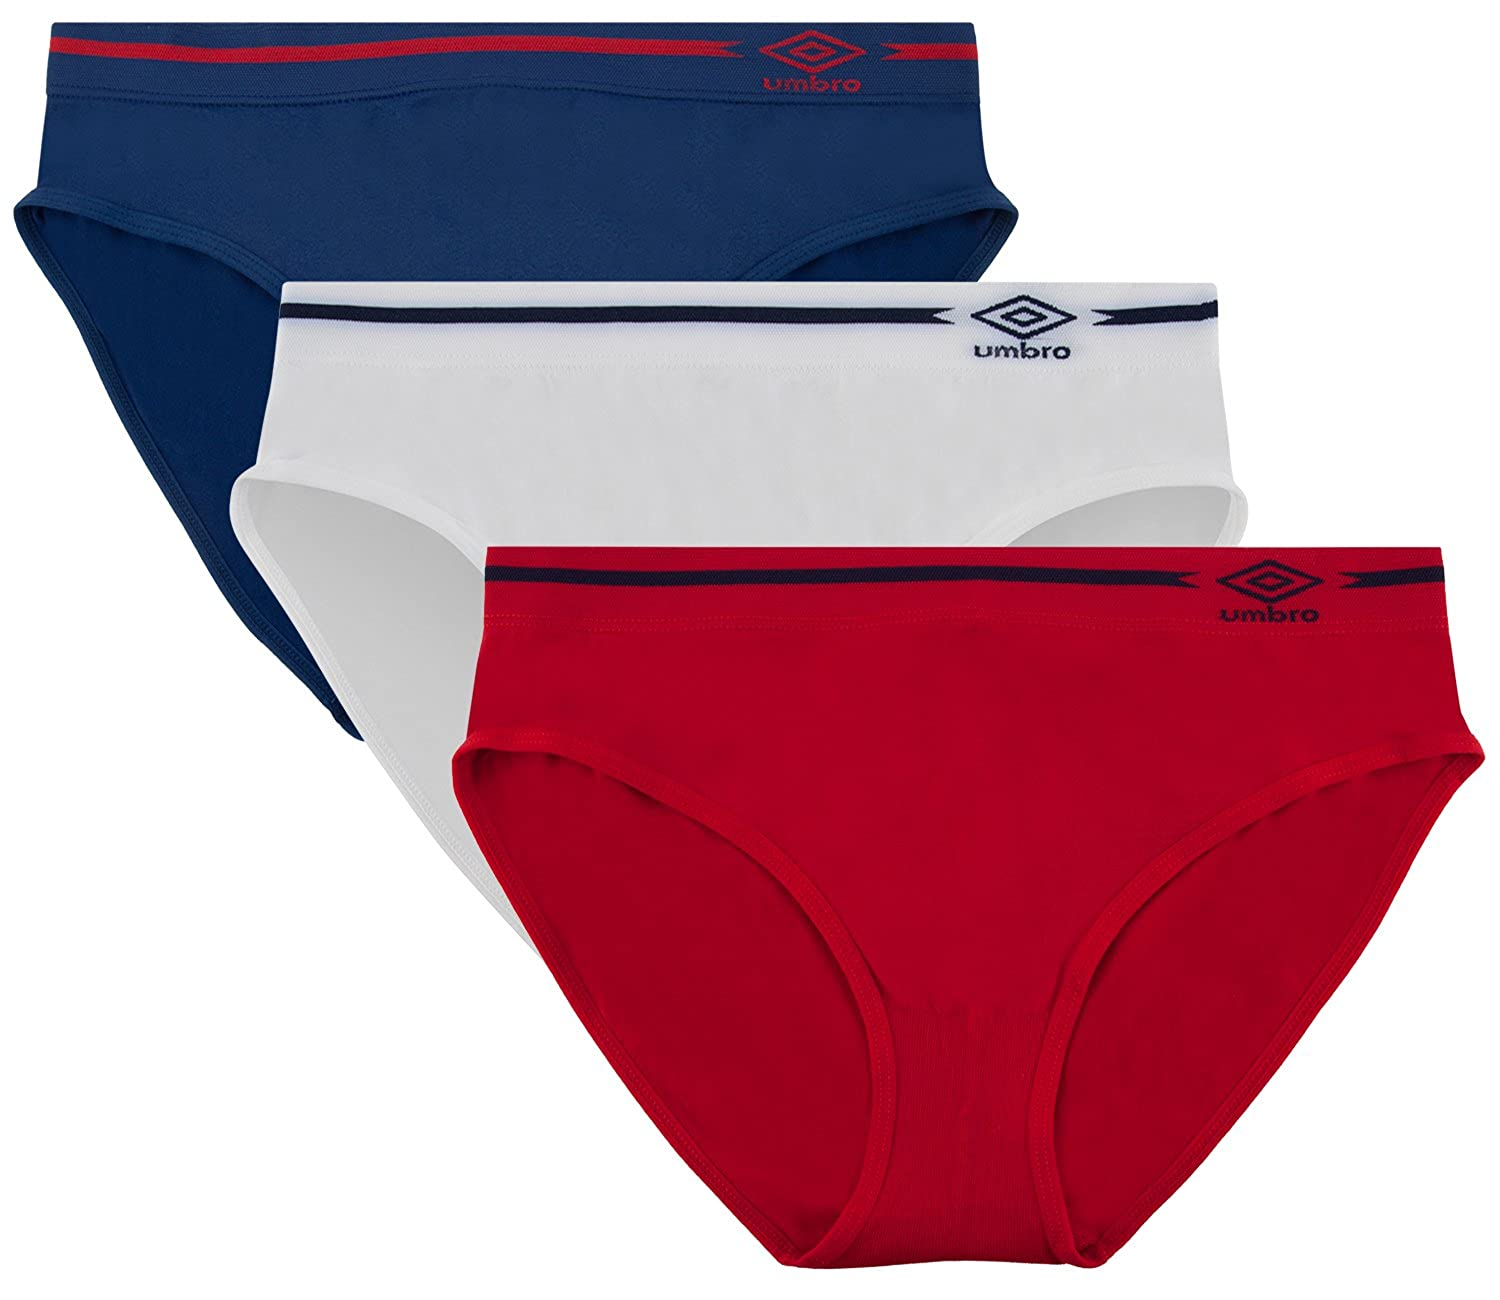 Umbro Women's Seamless Bikini Panties 3 Pack - Assorted Colors